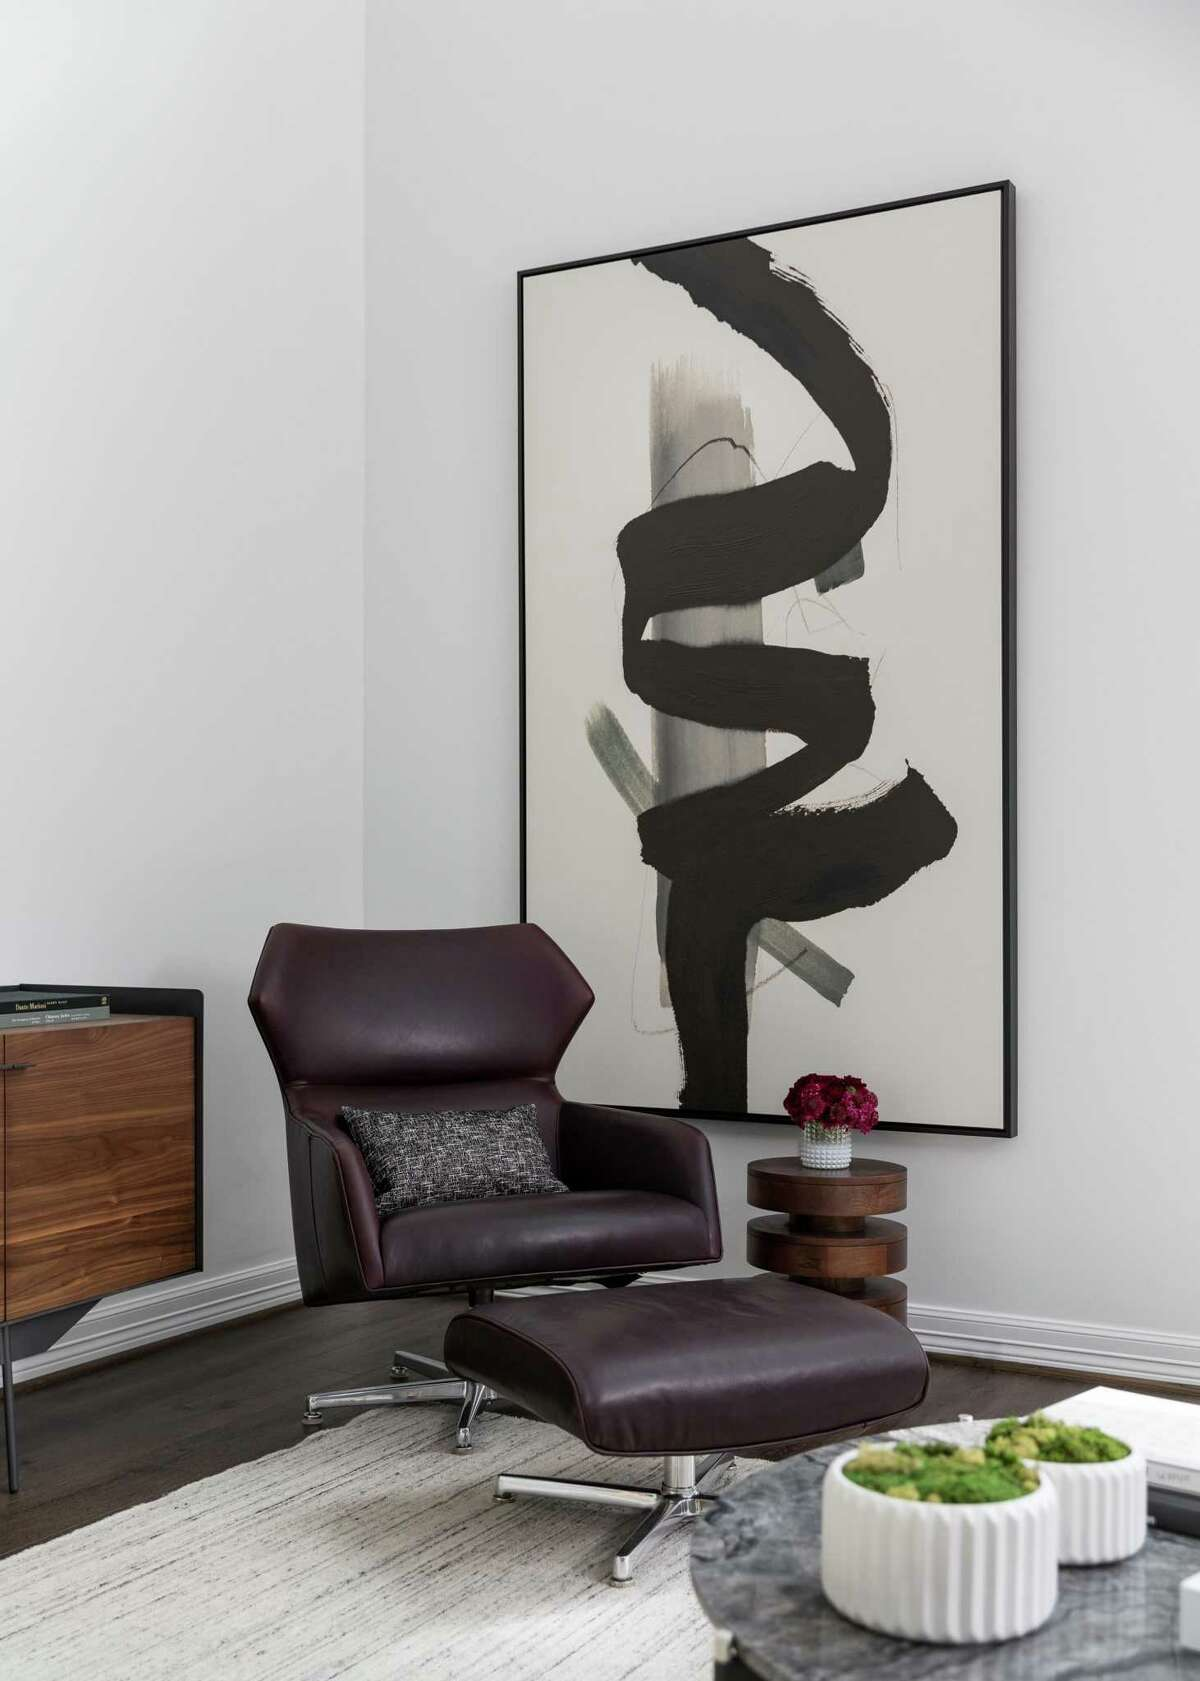 One corner of the living room has a deep burgundy chair and ottoman in front of a large-scale abstract painting.